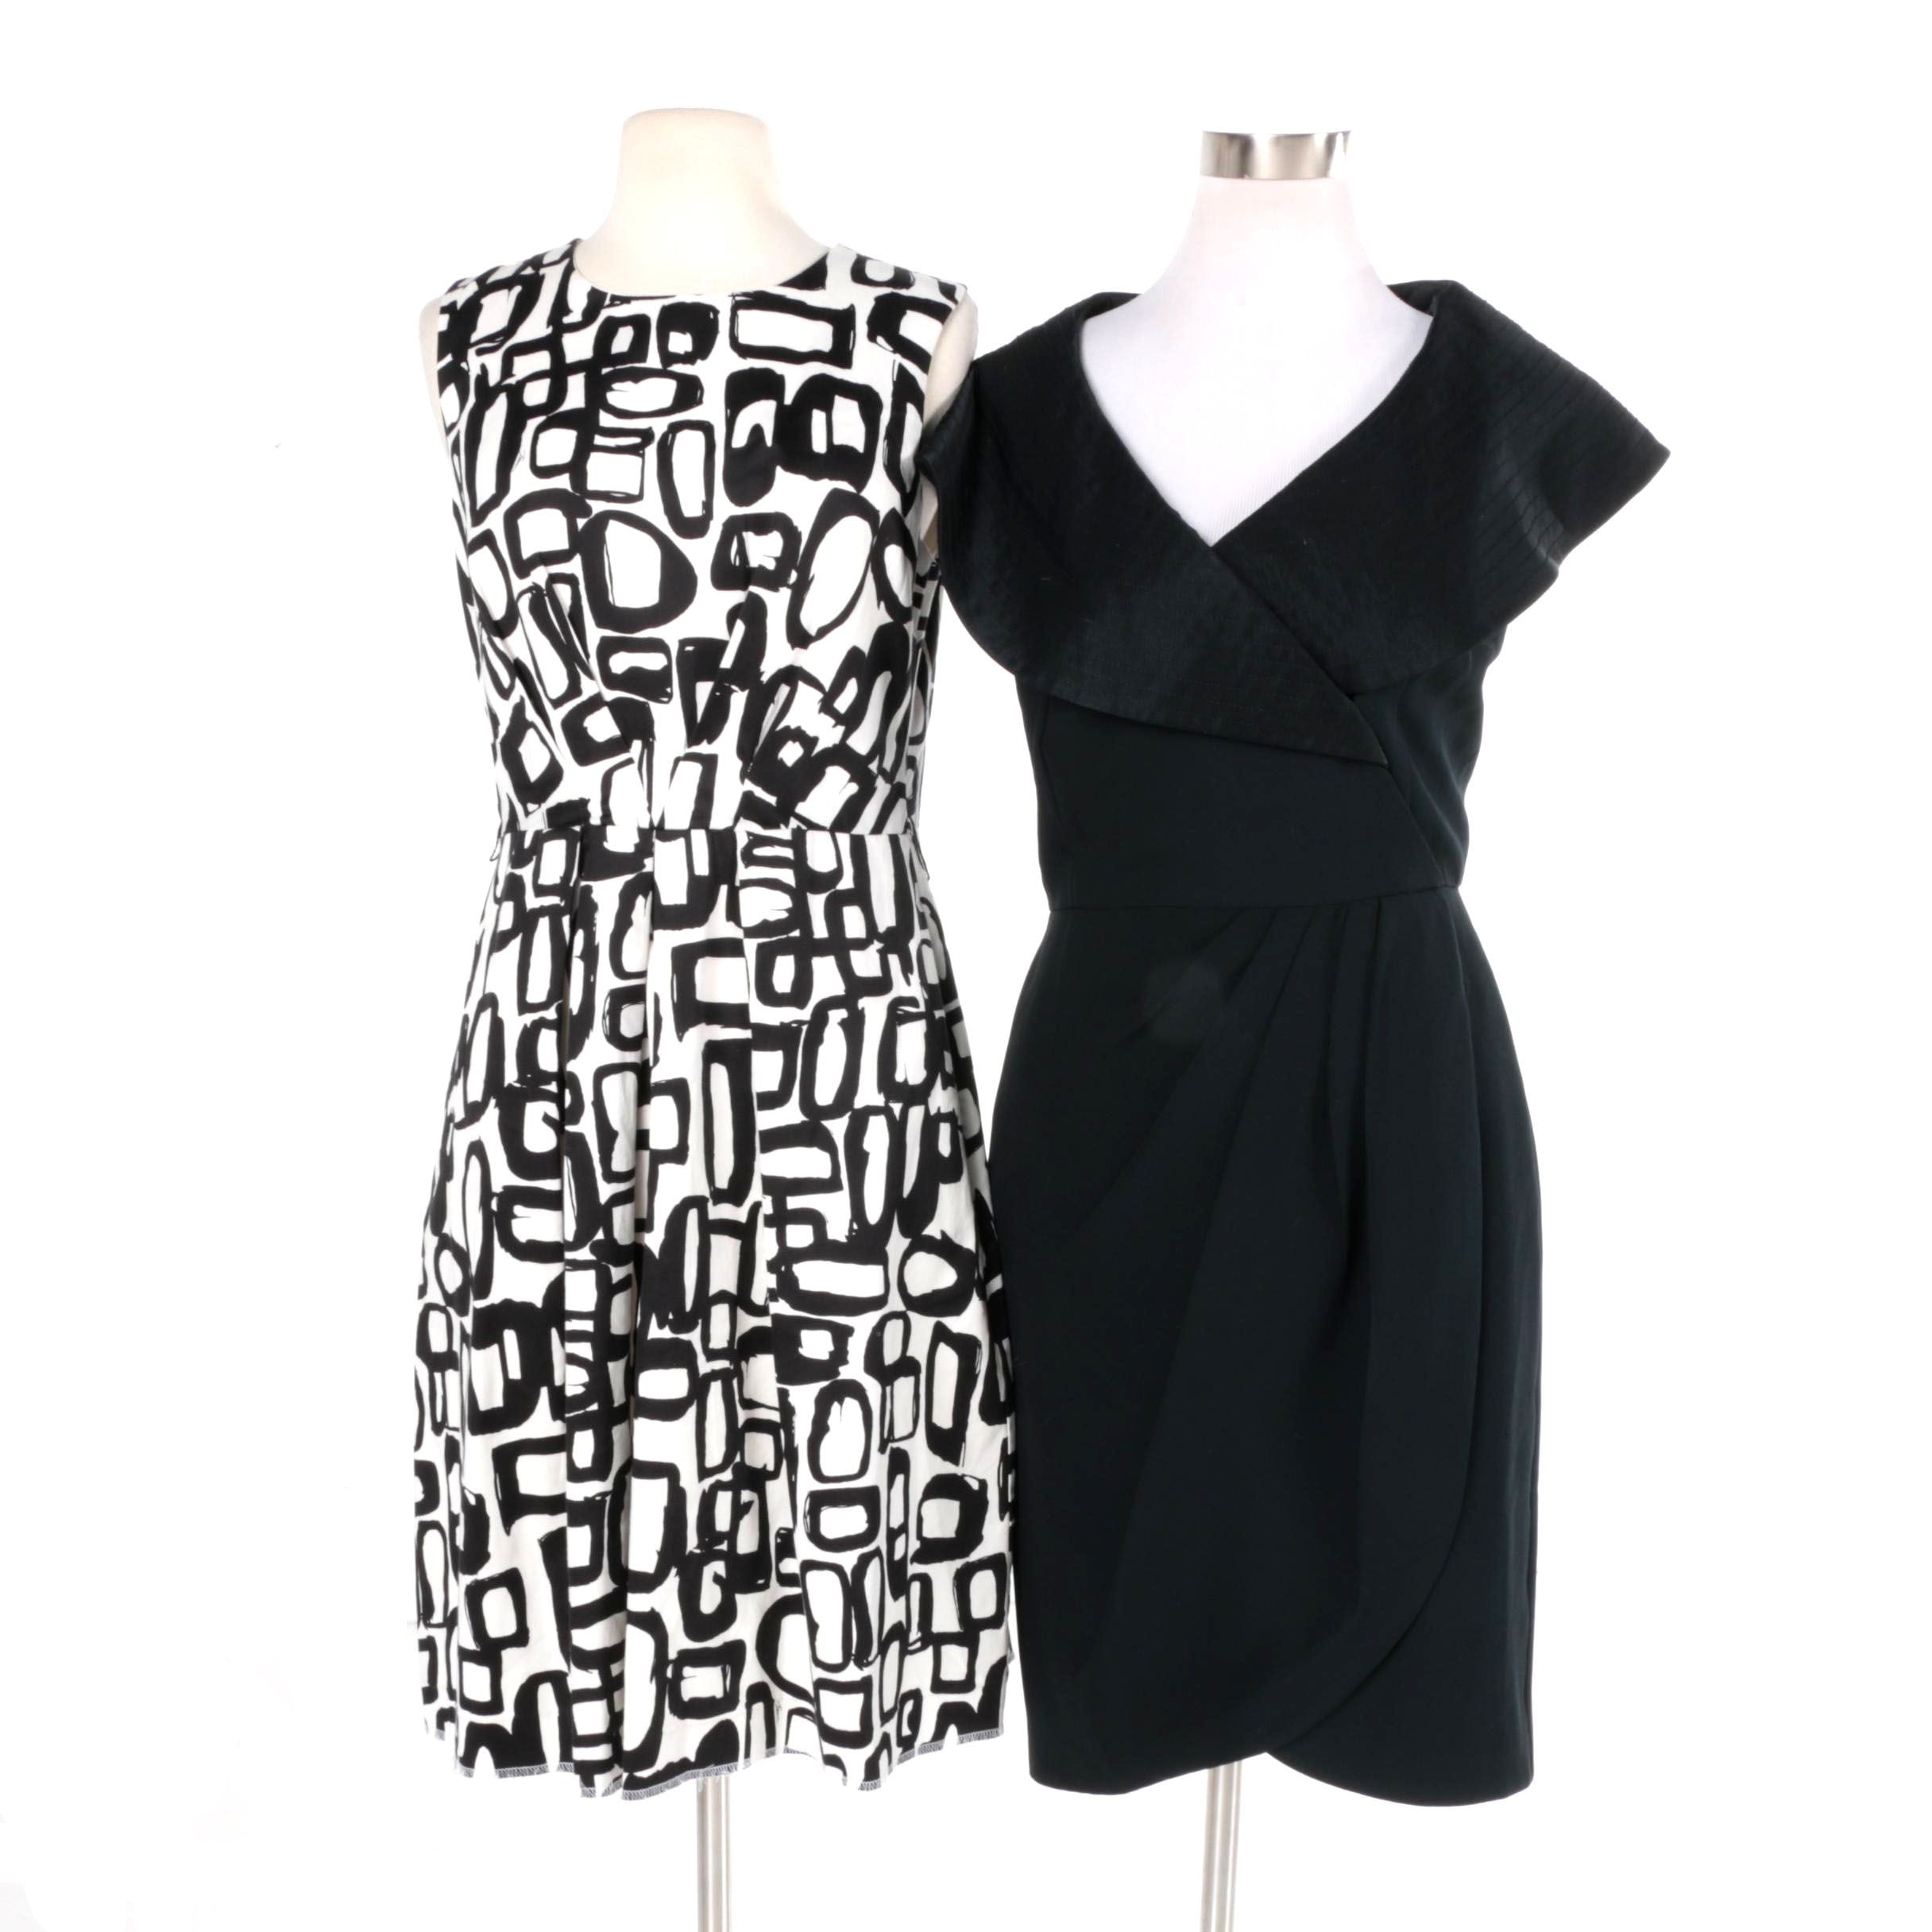 Trina Turk and Scaasi Dresses